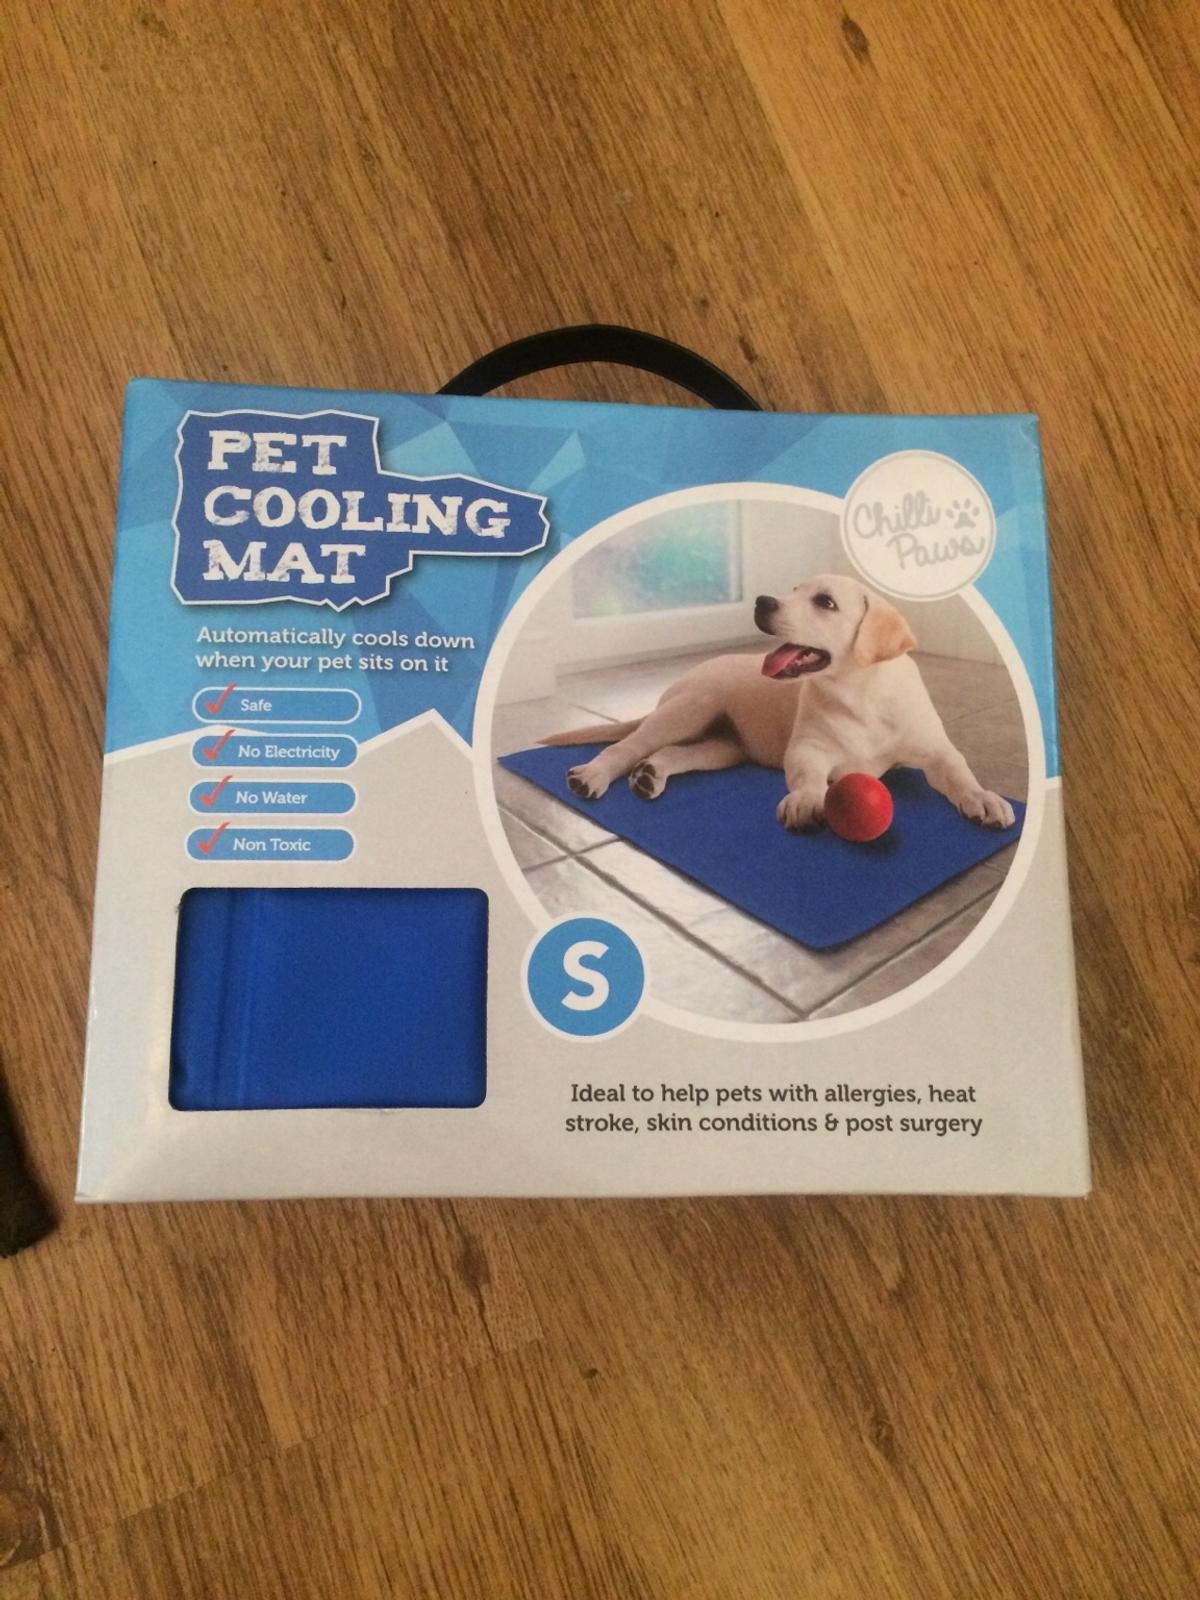 PET COOLING MAT HEAT SKIN ALLERGIES ELECTRICITY//CONDITIONS//STROKE NON TOXIC BED